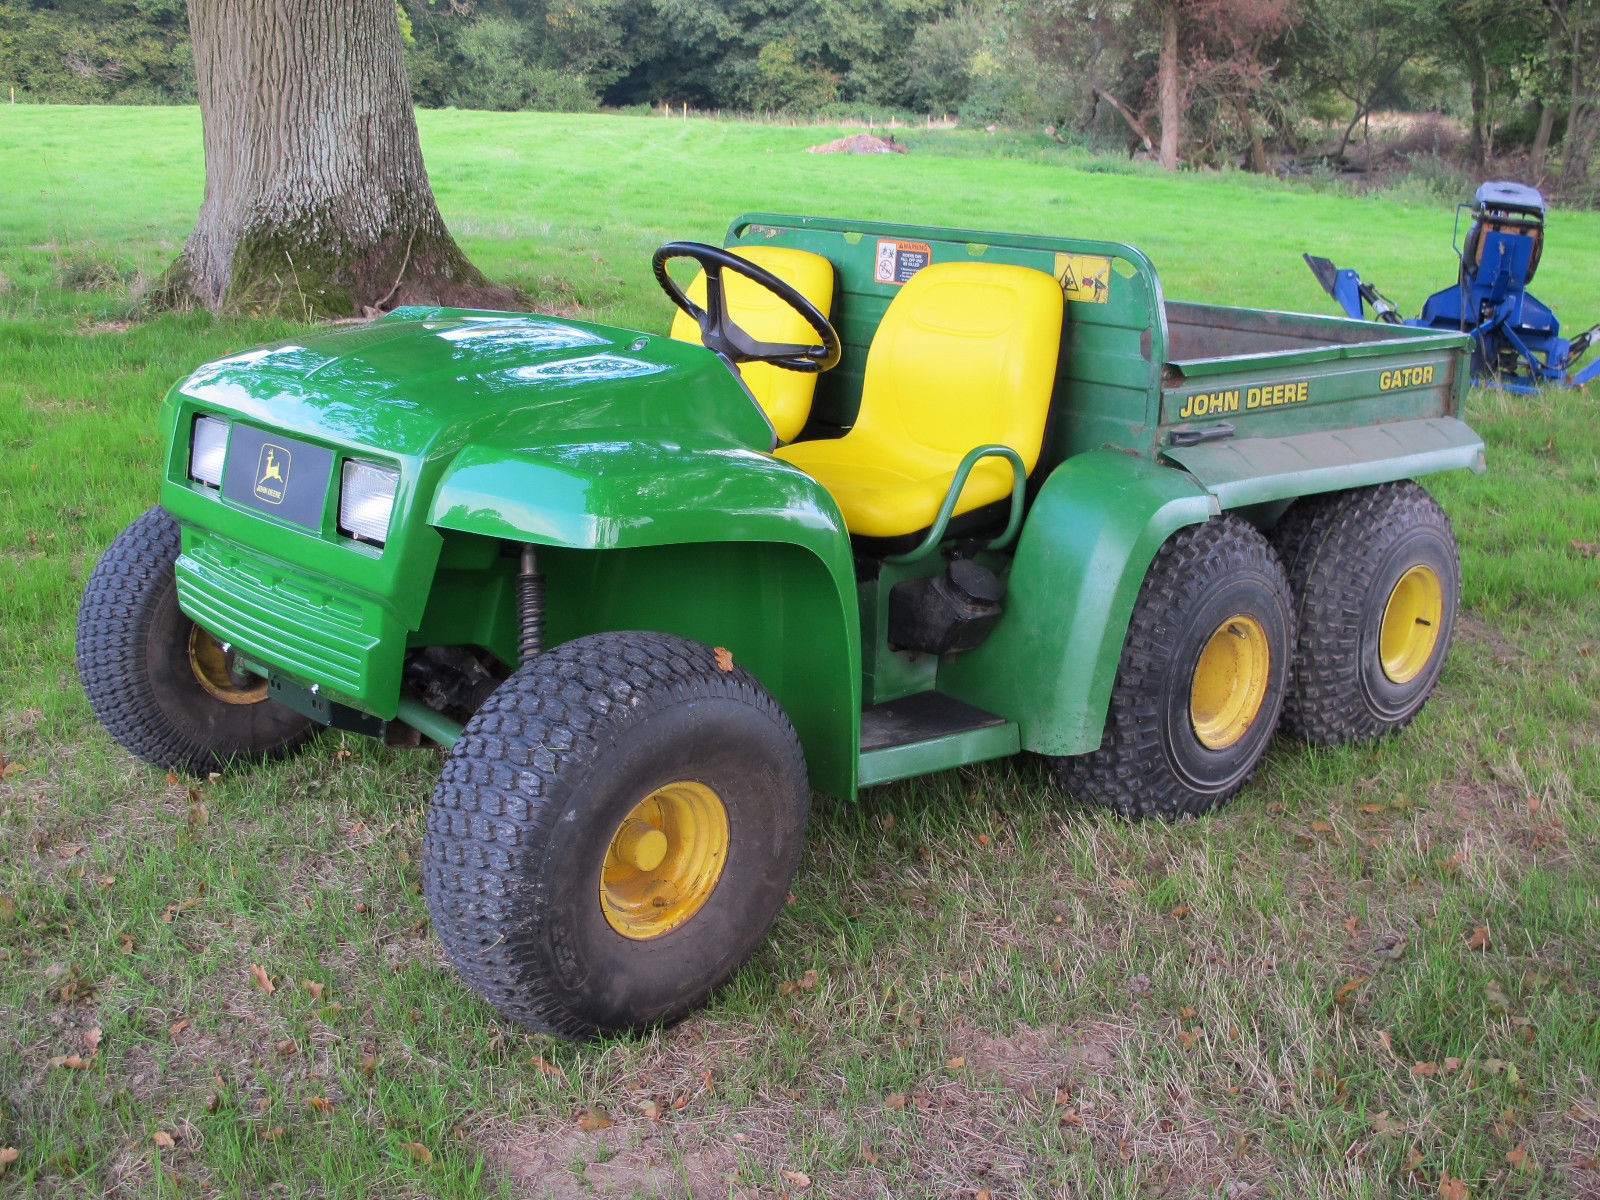 john deere gator 6x4 gator utility vehicle atv mule electric tip no vat. Black Bedroom Furniture Sets. Home Design Ideas